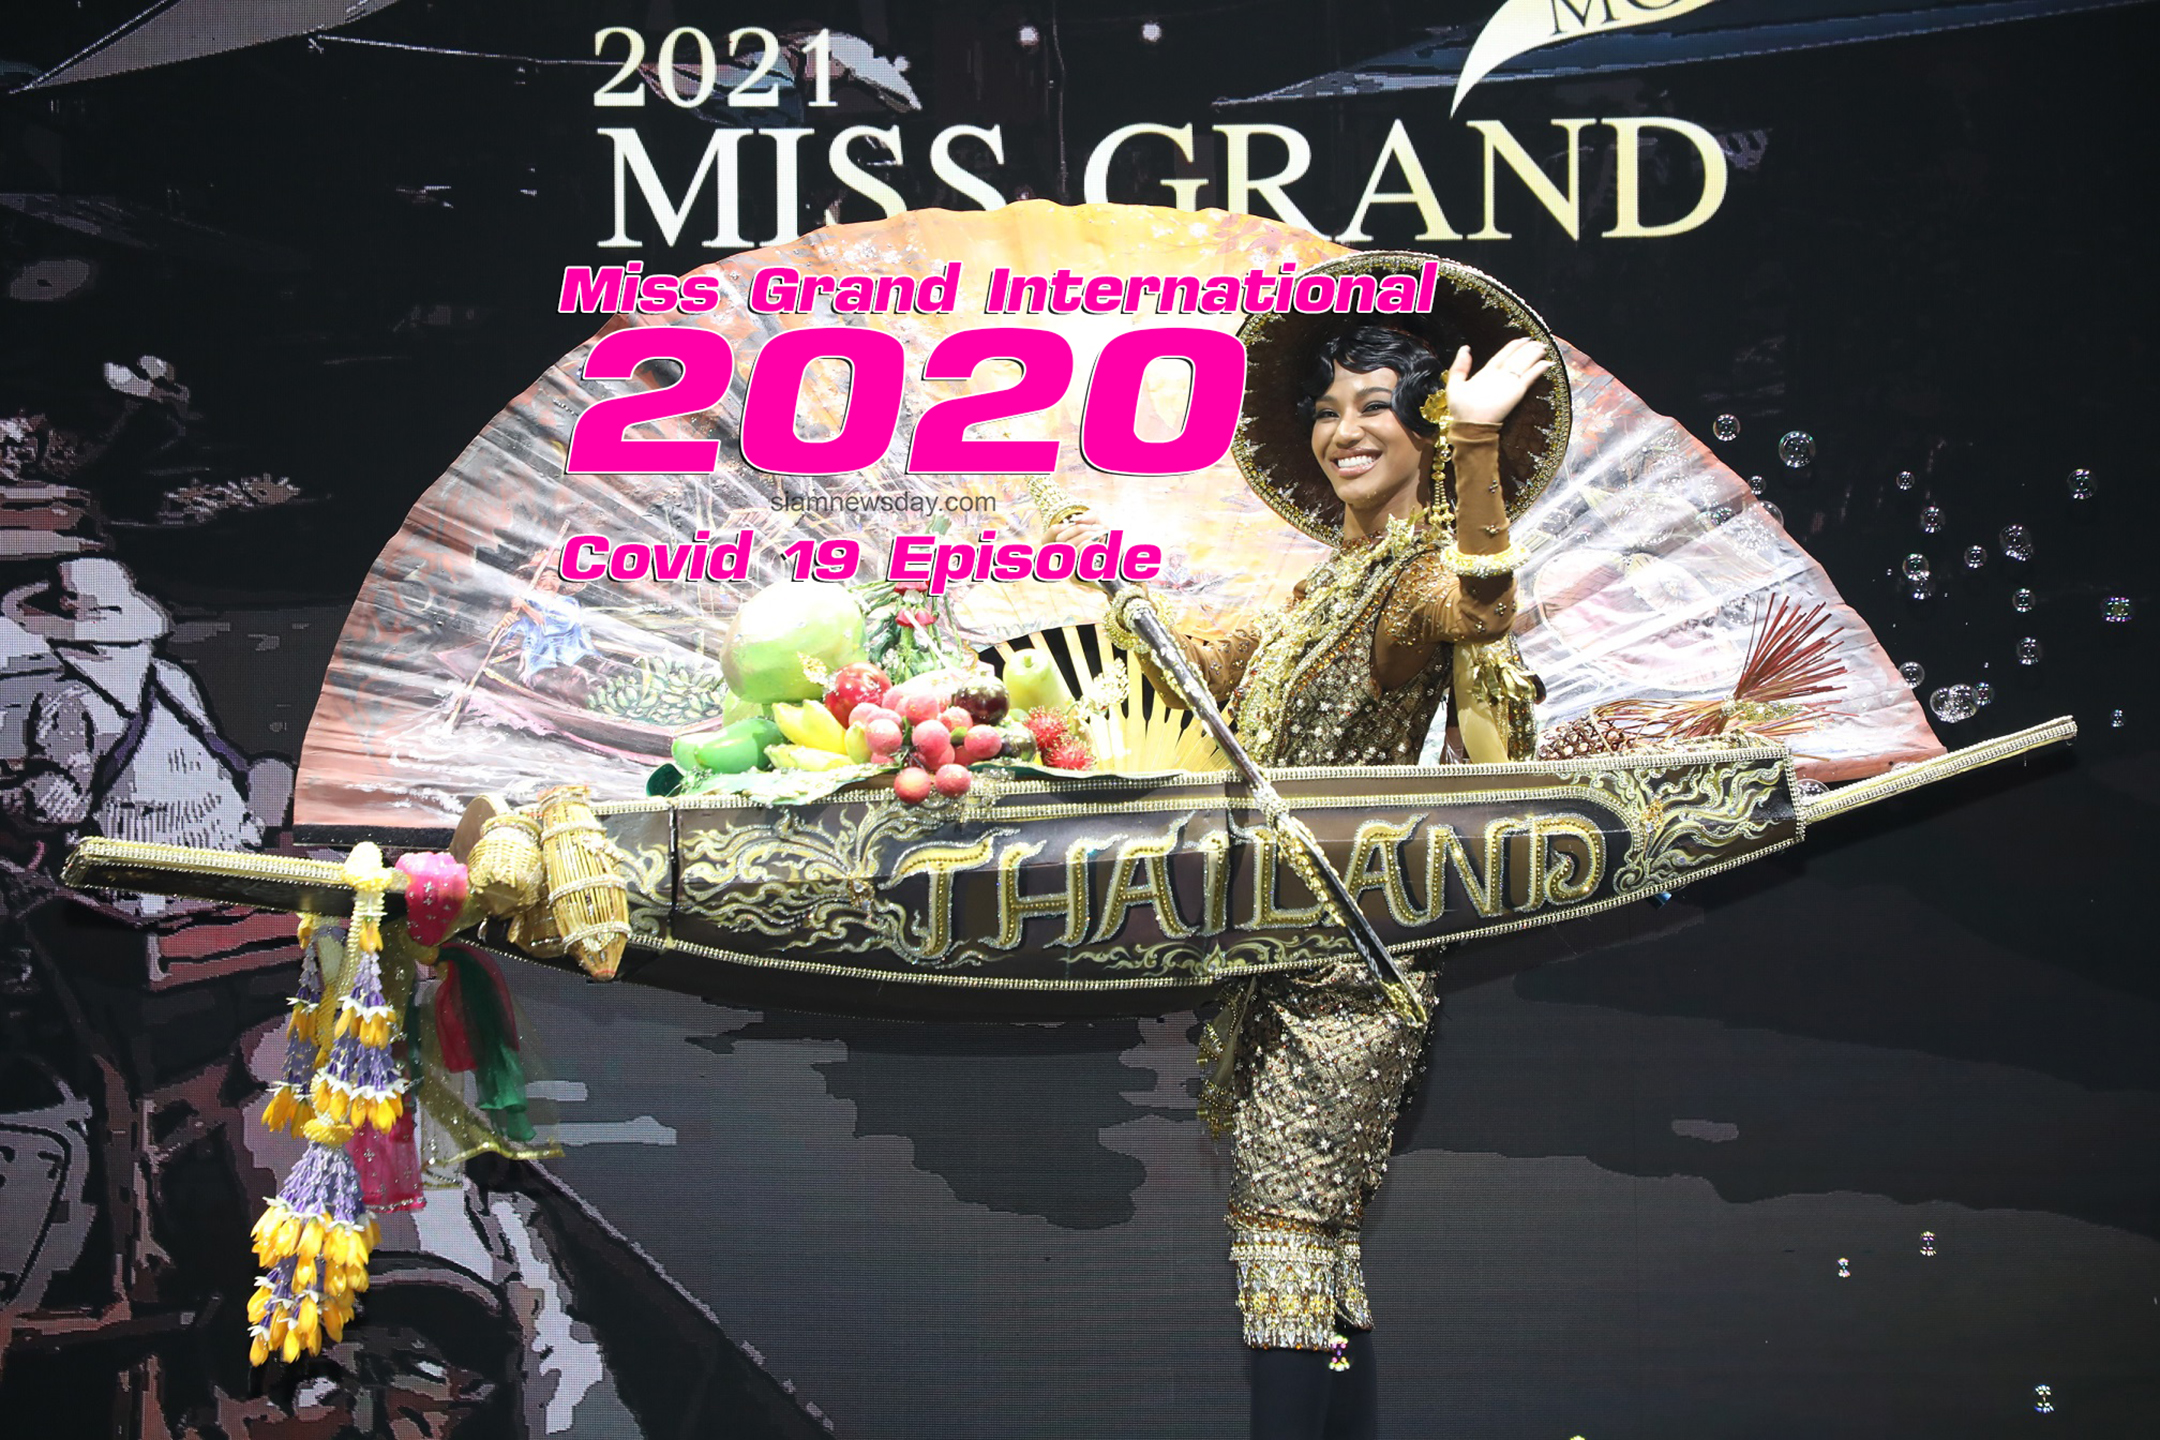 Miss Grand International 2020 : Covid 19 Episode